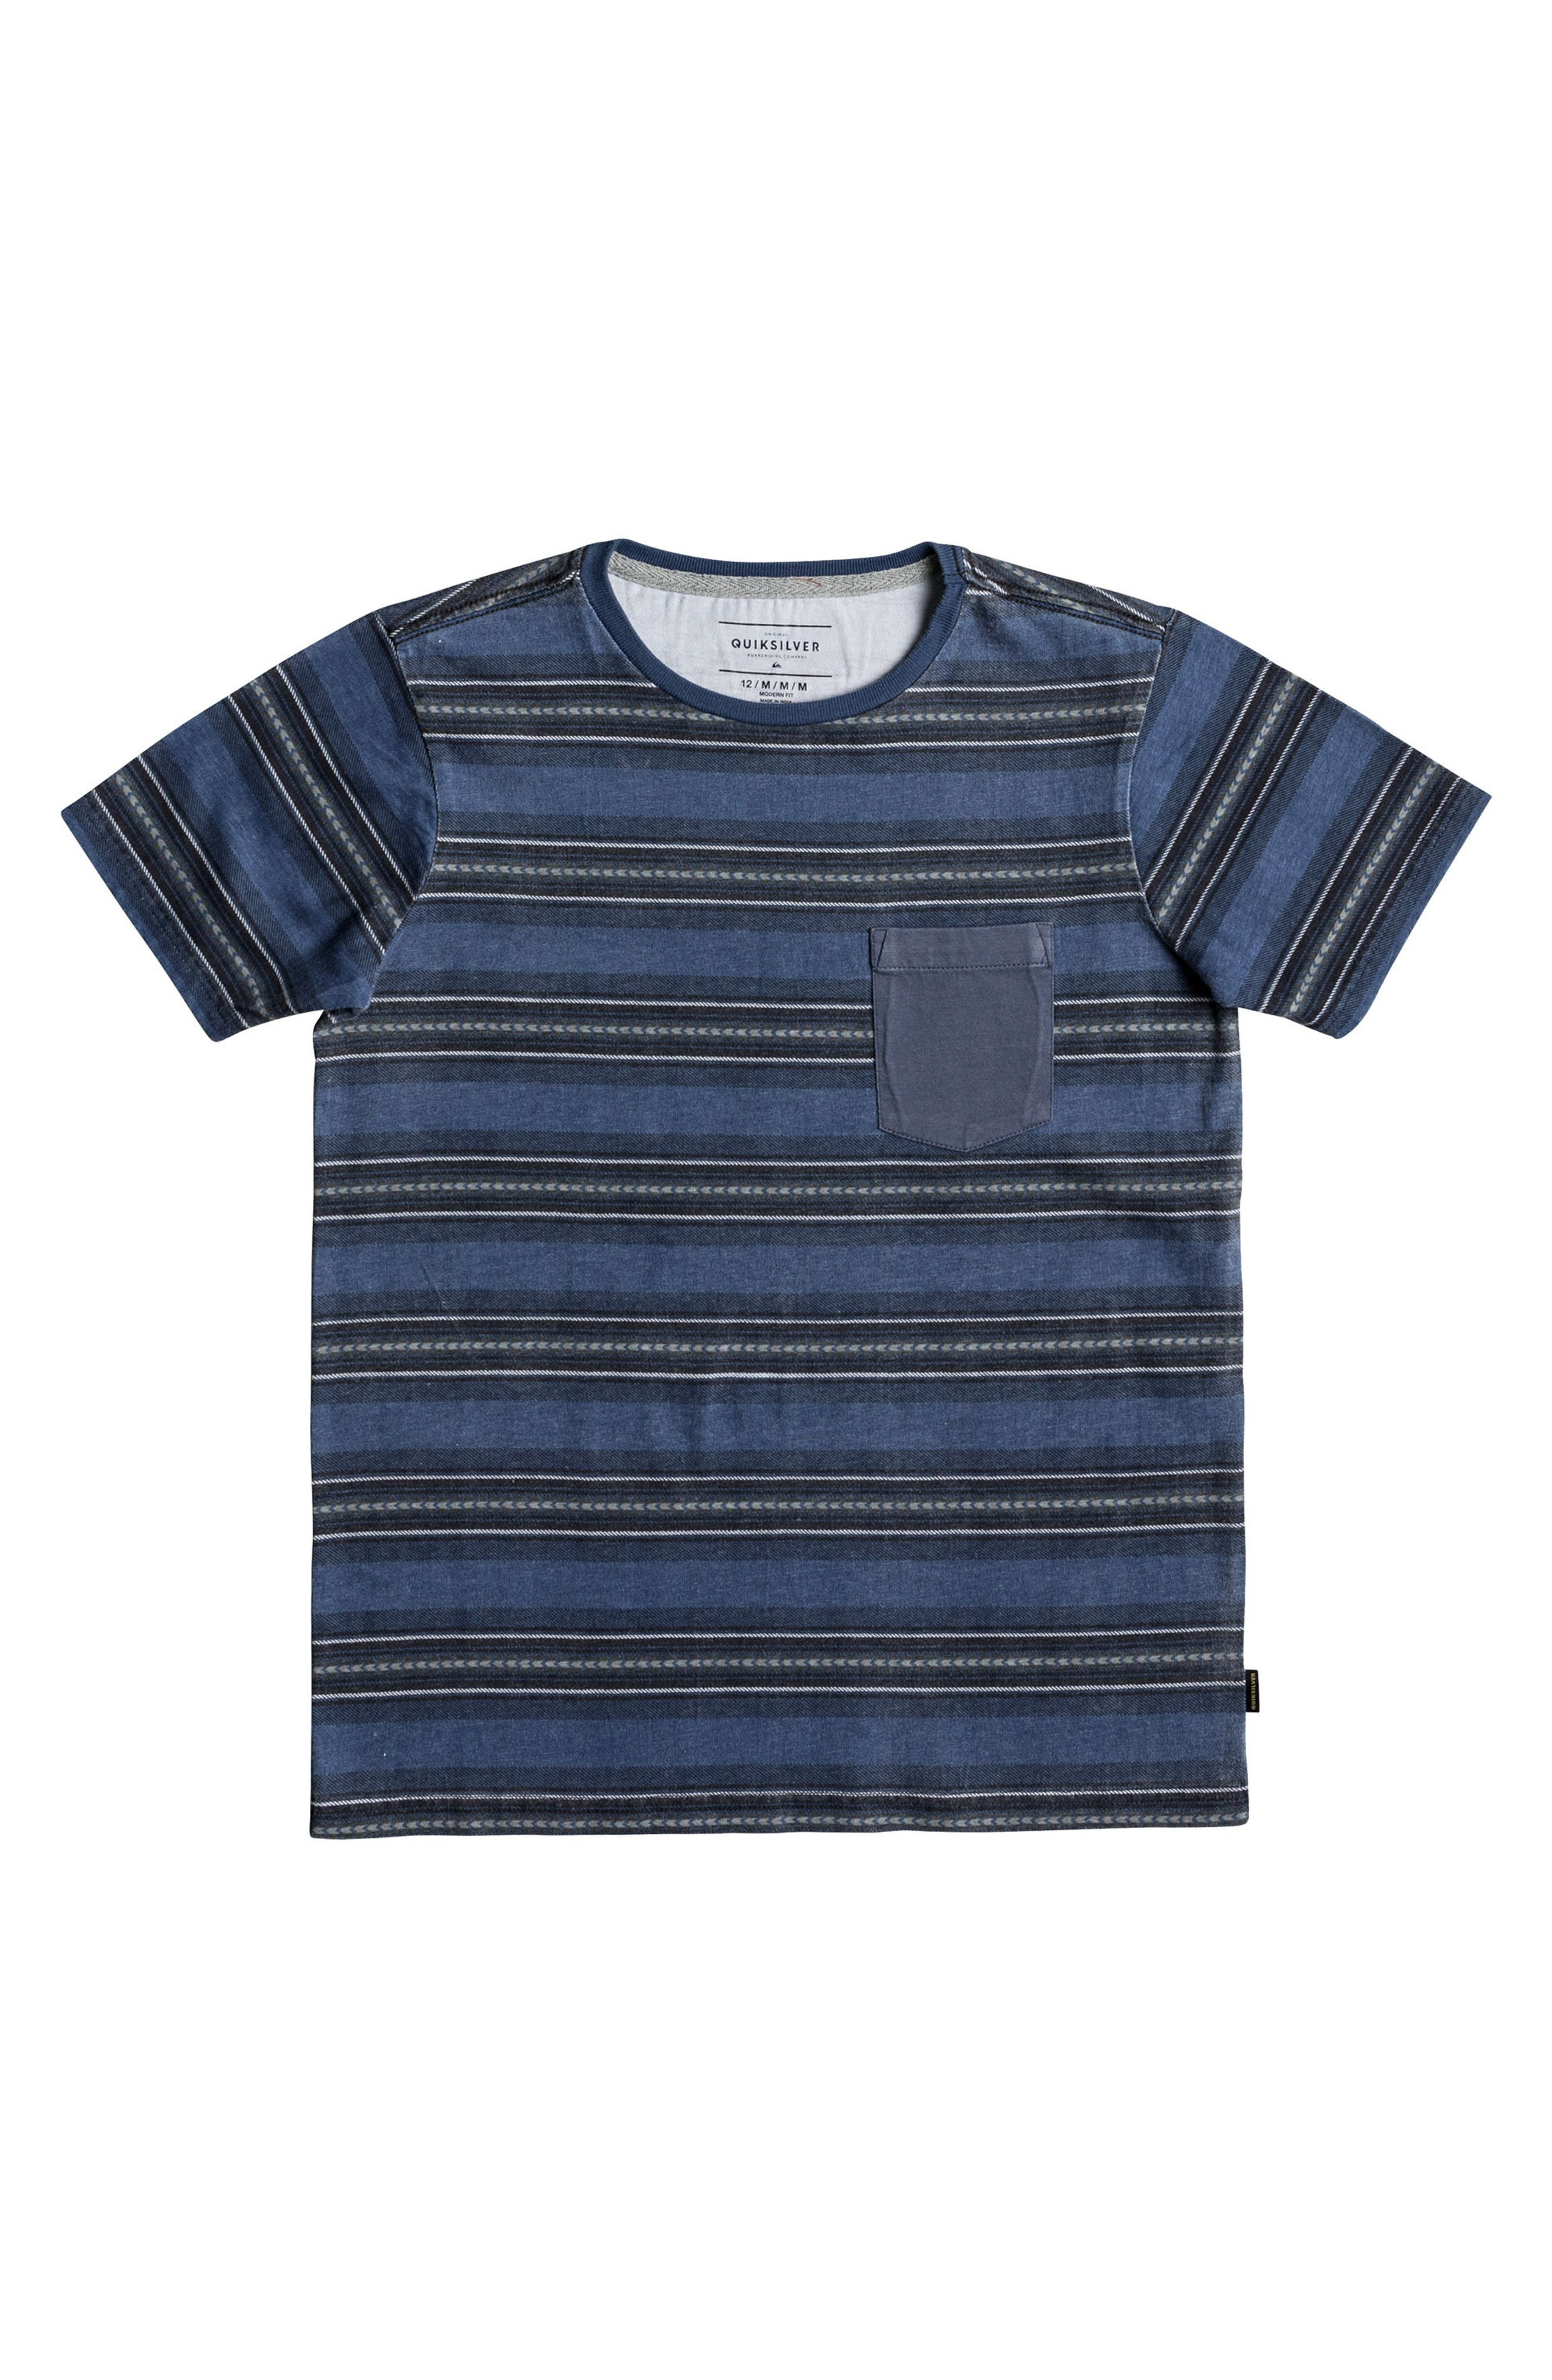 Alternate Image 1 Selected - Quiksilver Bayo Pocket T-Shirt (Big Boys)